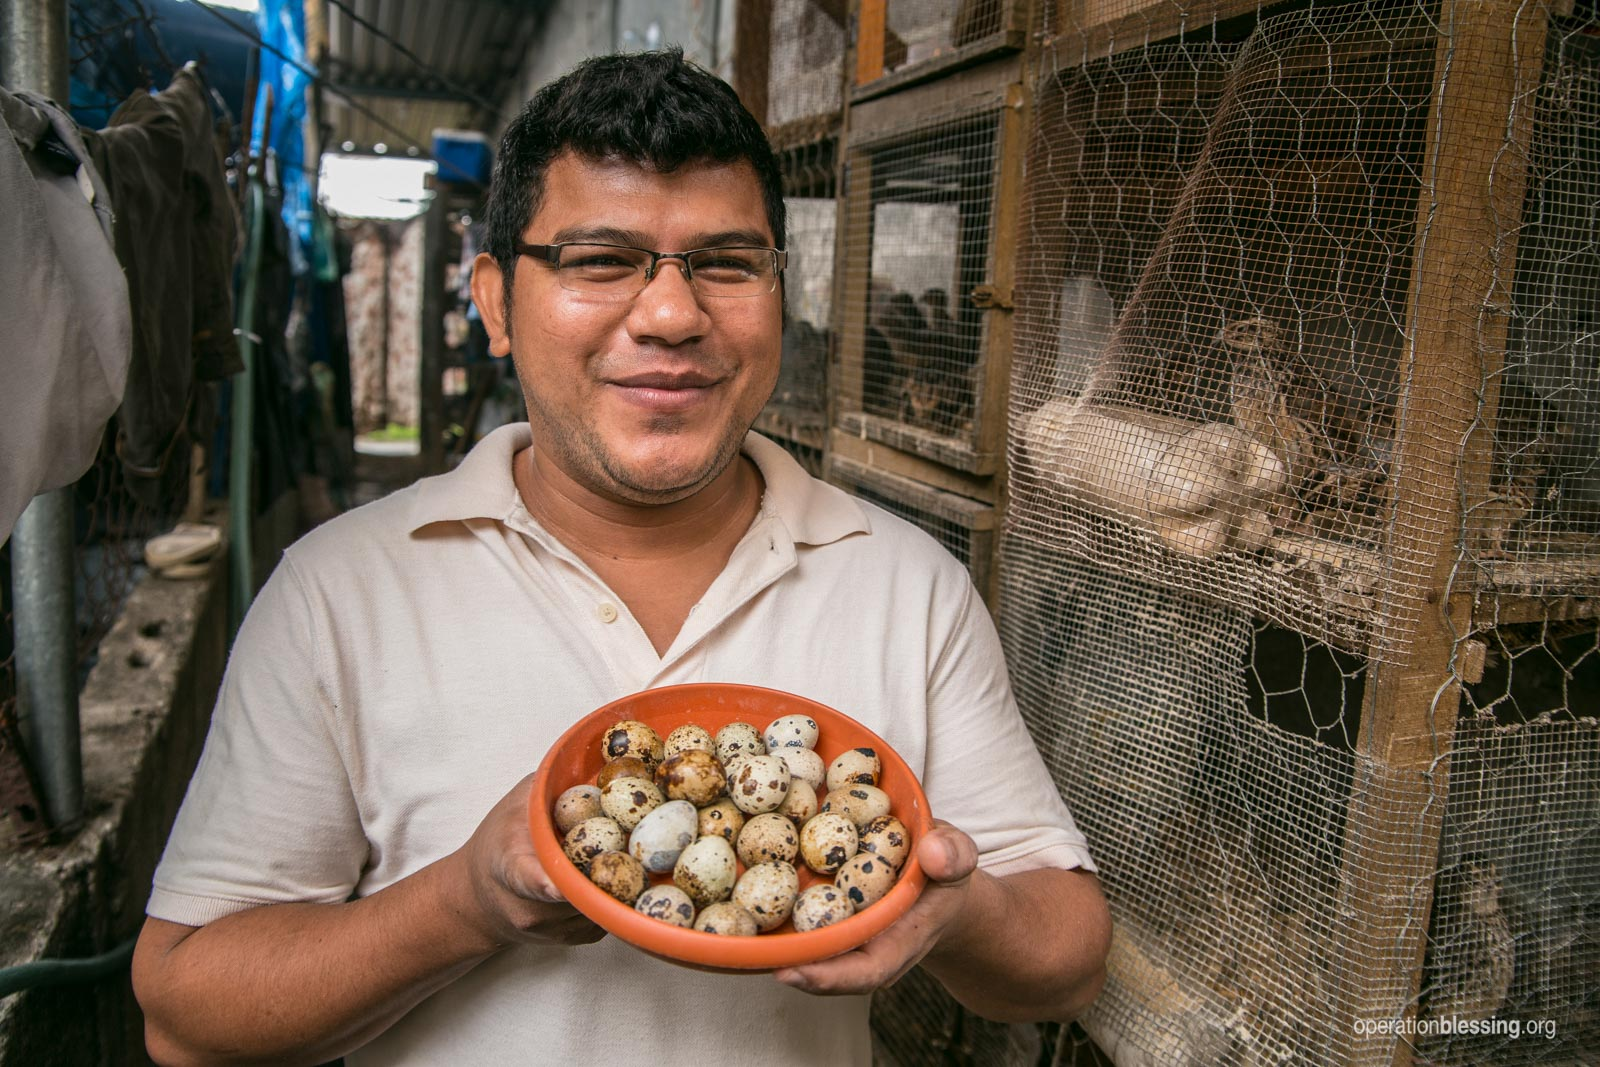 Julian poses with quail eggs form his successful business.